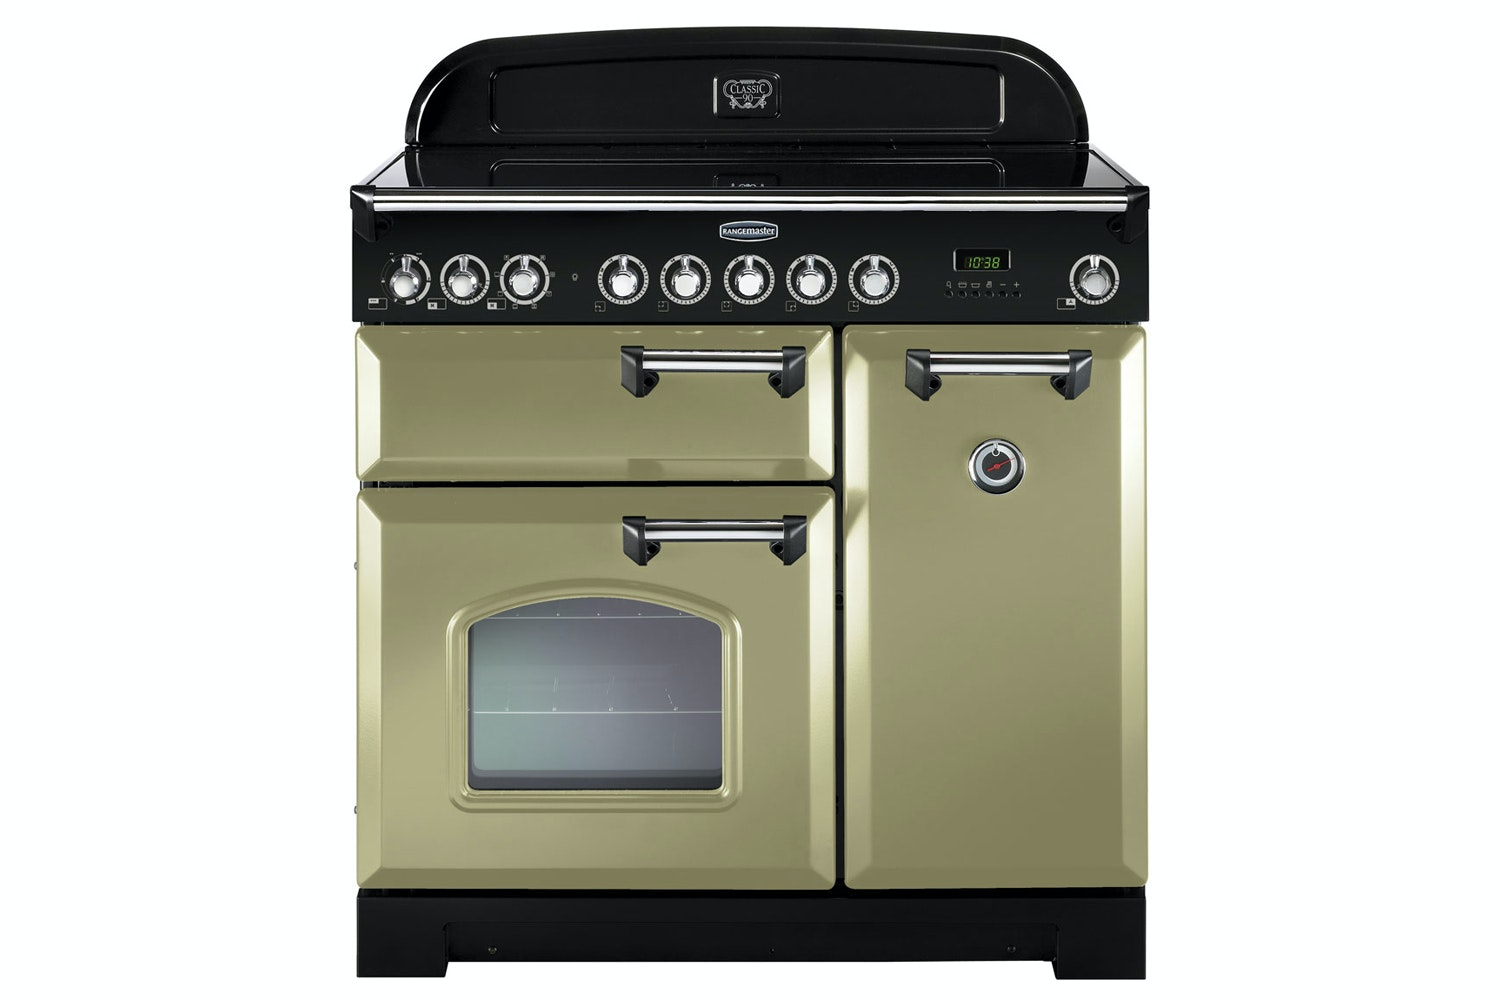 Rangemaster Classic Deluxe 90cm Electric Range Cooker | CDL90ECOG/C | Olive Green